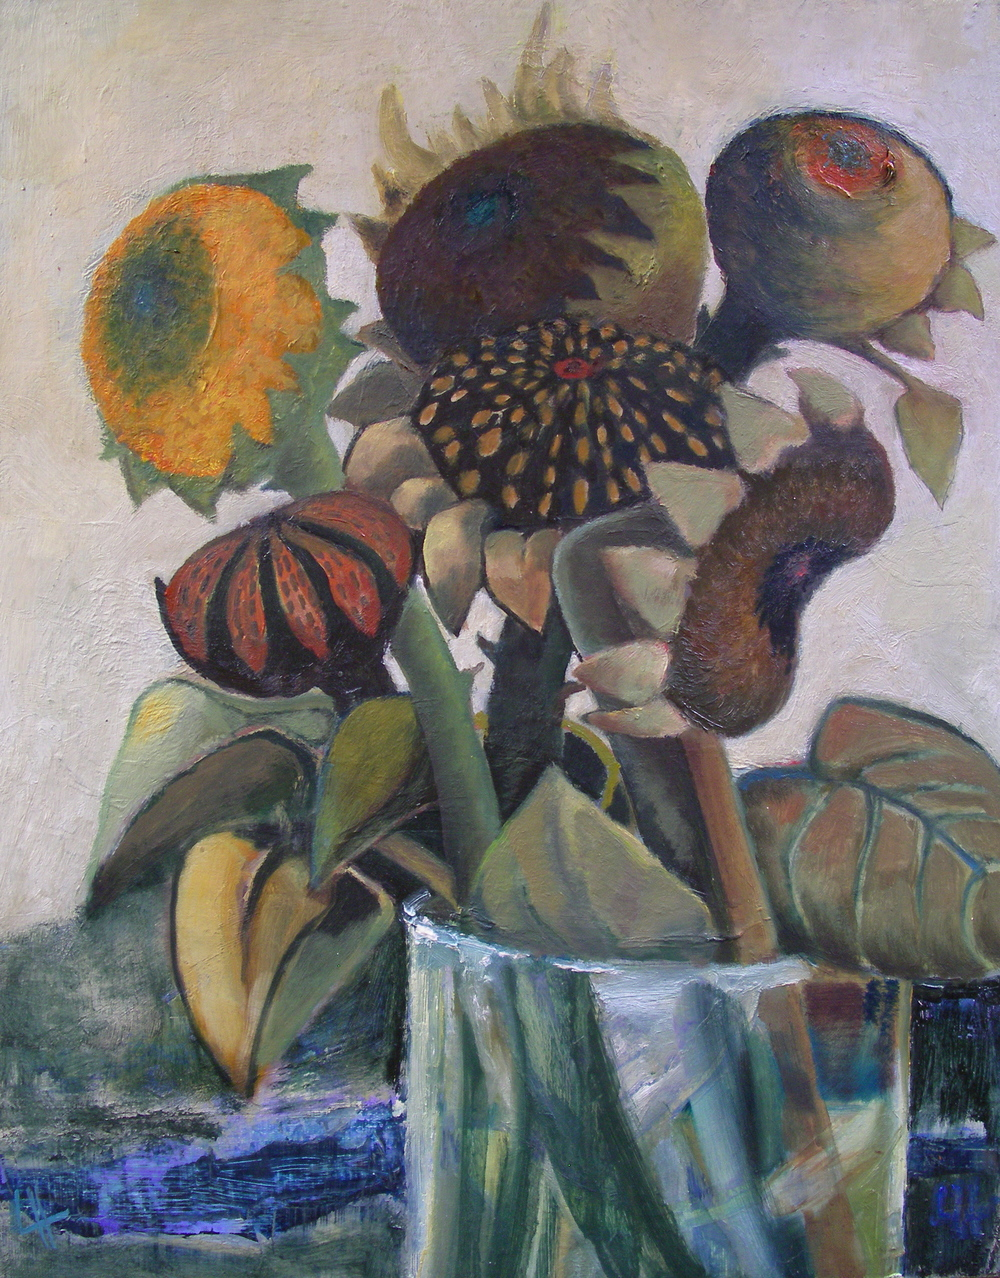 Vase of Sunflowers I  [35x46cm] oil on board, 2012  SOLD